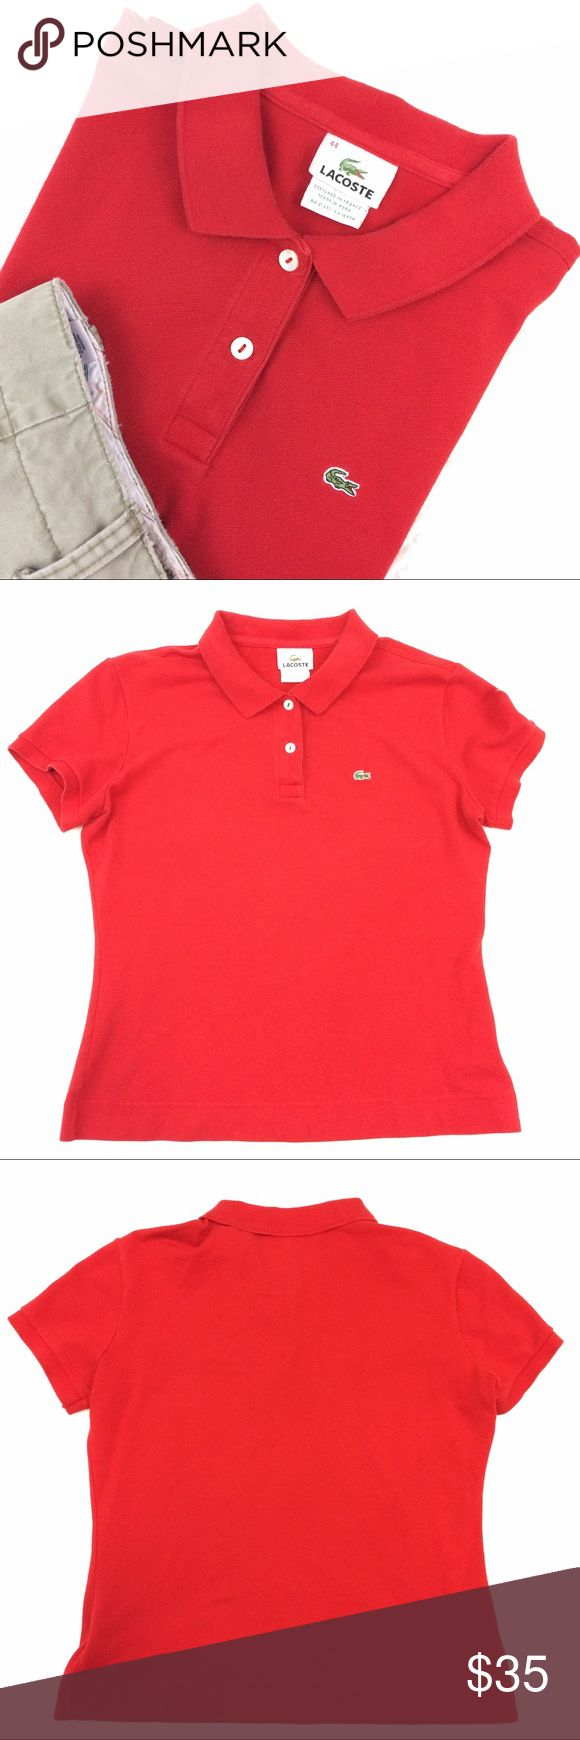 Lacoste Polo Shirt This is a red Lacoste polo shirt. It is in awesome used condition. Sz 44 Lacoste Shirts Polos